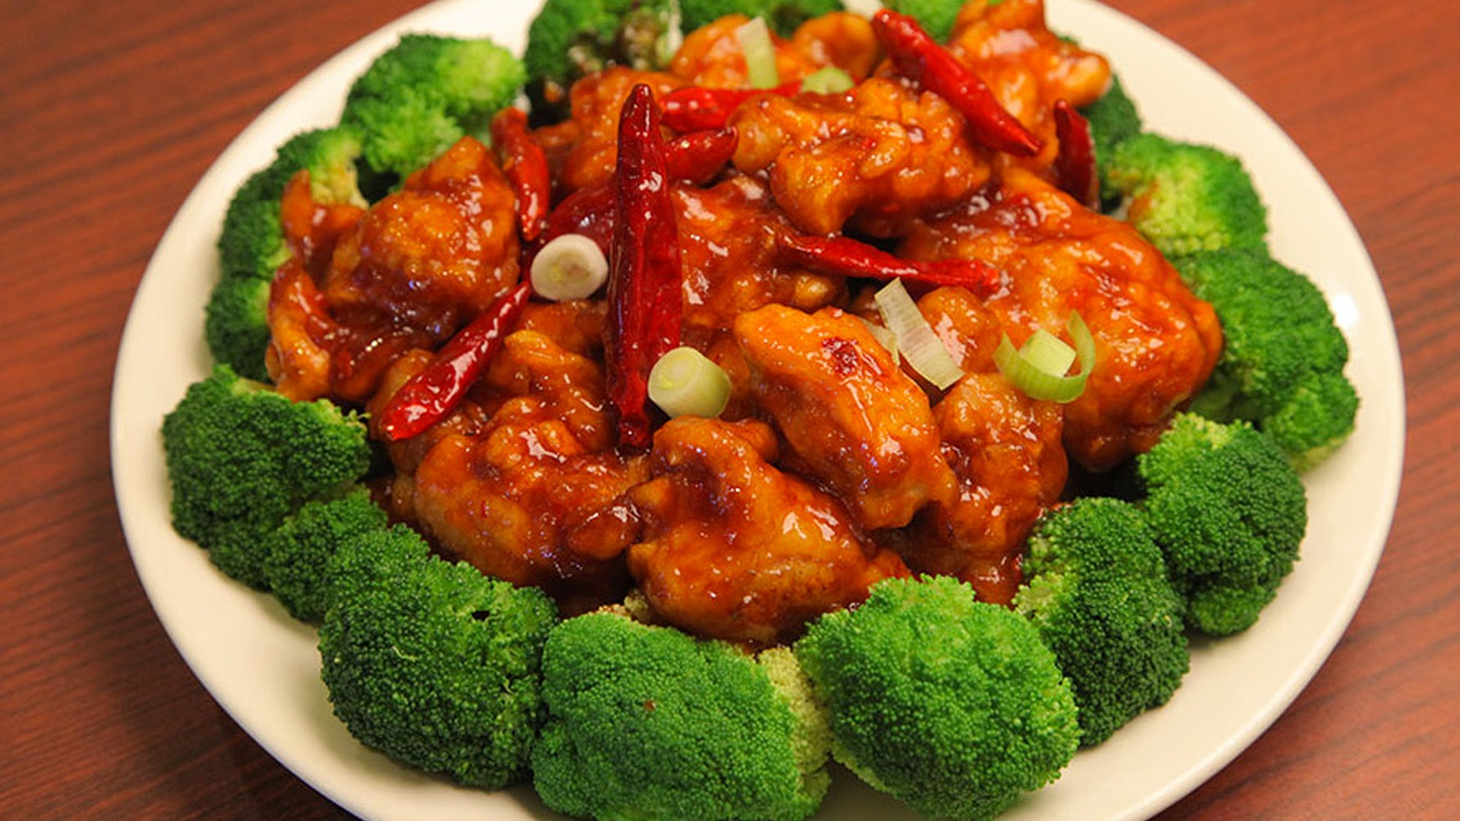 """Jonathan Gold declares Chinatown LA's next big food destination. We search for the origins of General Tso's chicken and talk to two American born restaurateurs who are trying to serve it to customers in Shanghai. Plus, a food writer files an official complaint against """"oriental-flavored"""" ramen."""